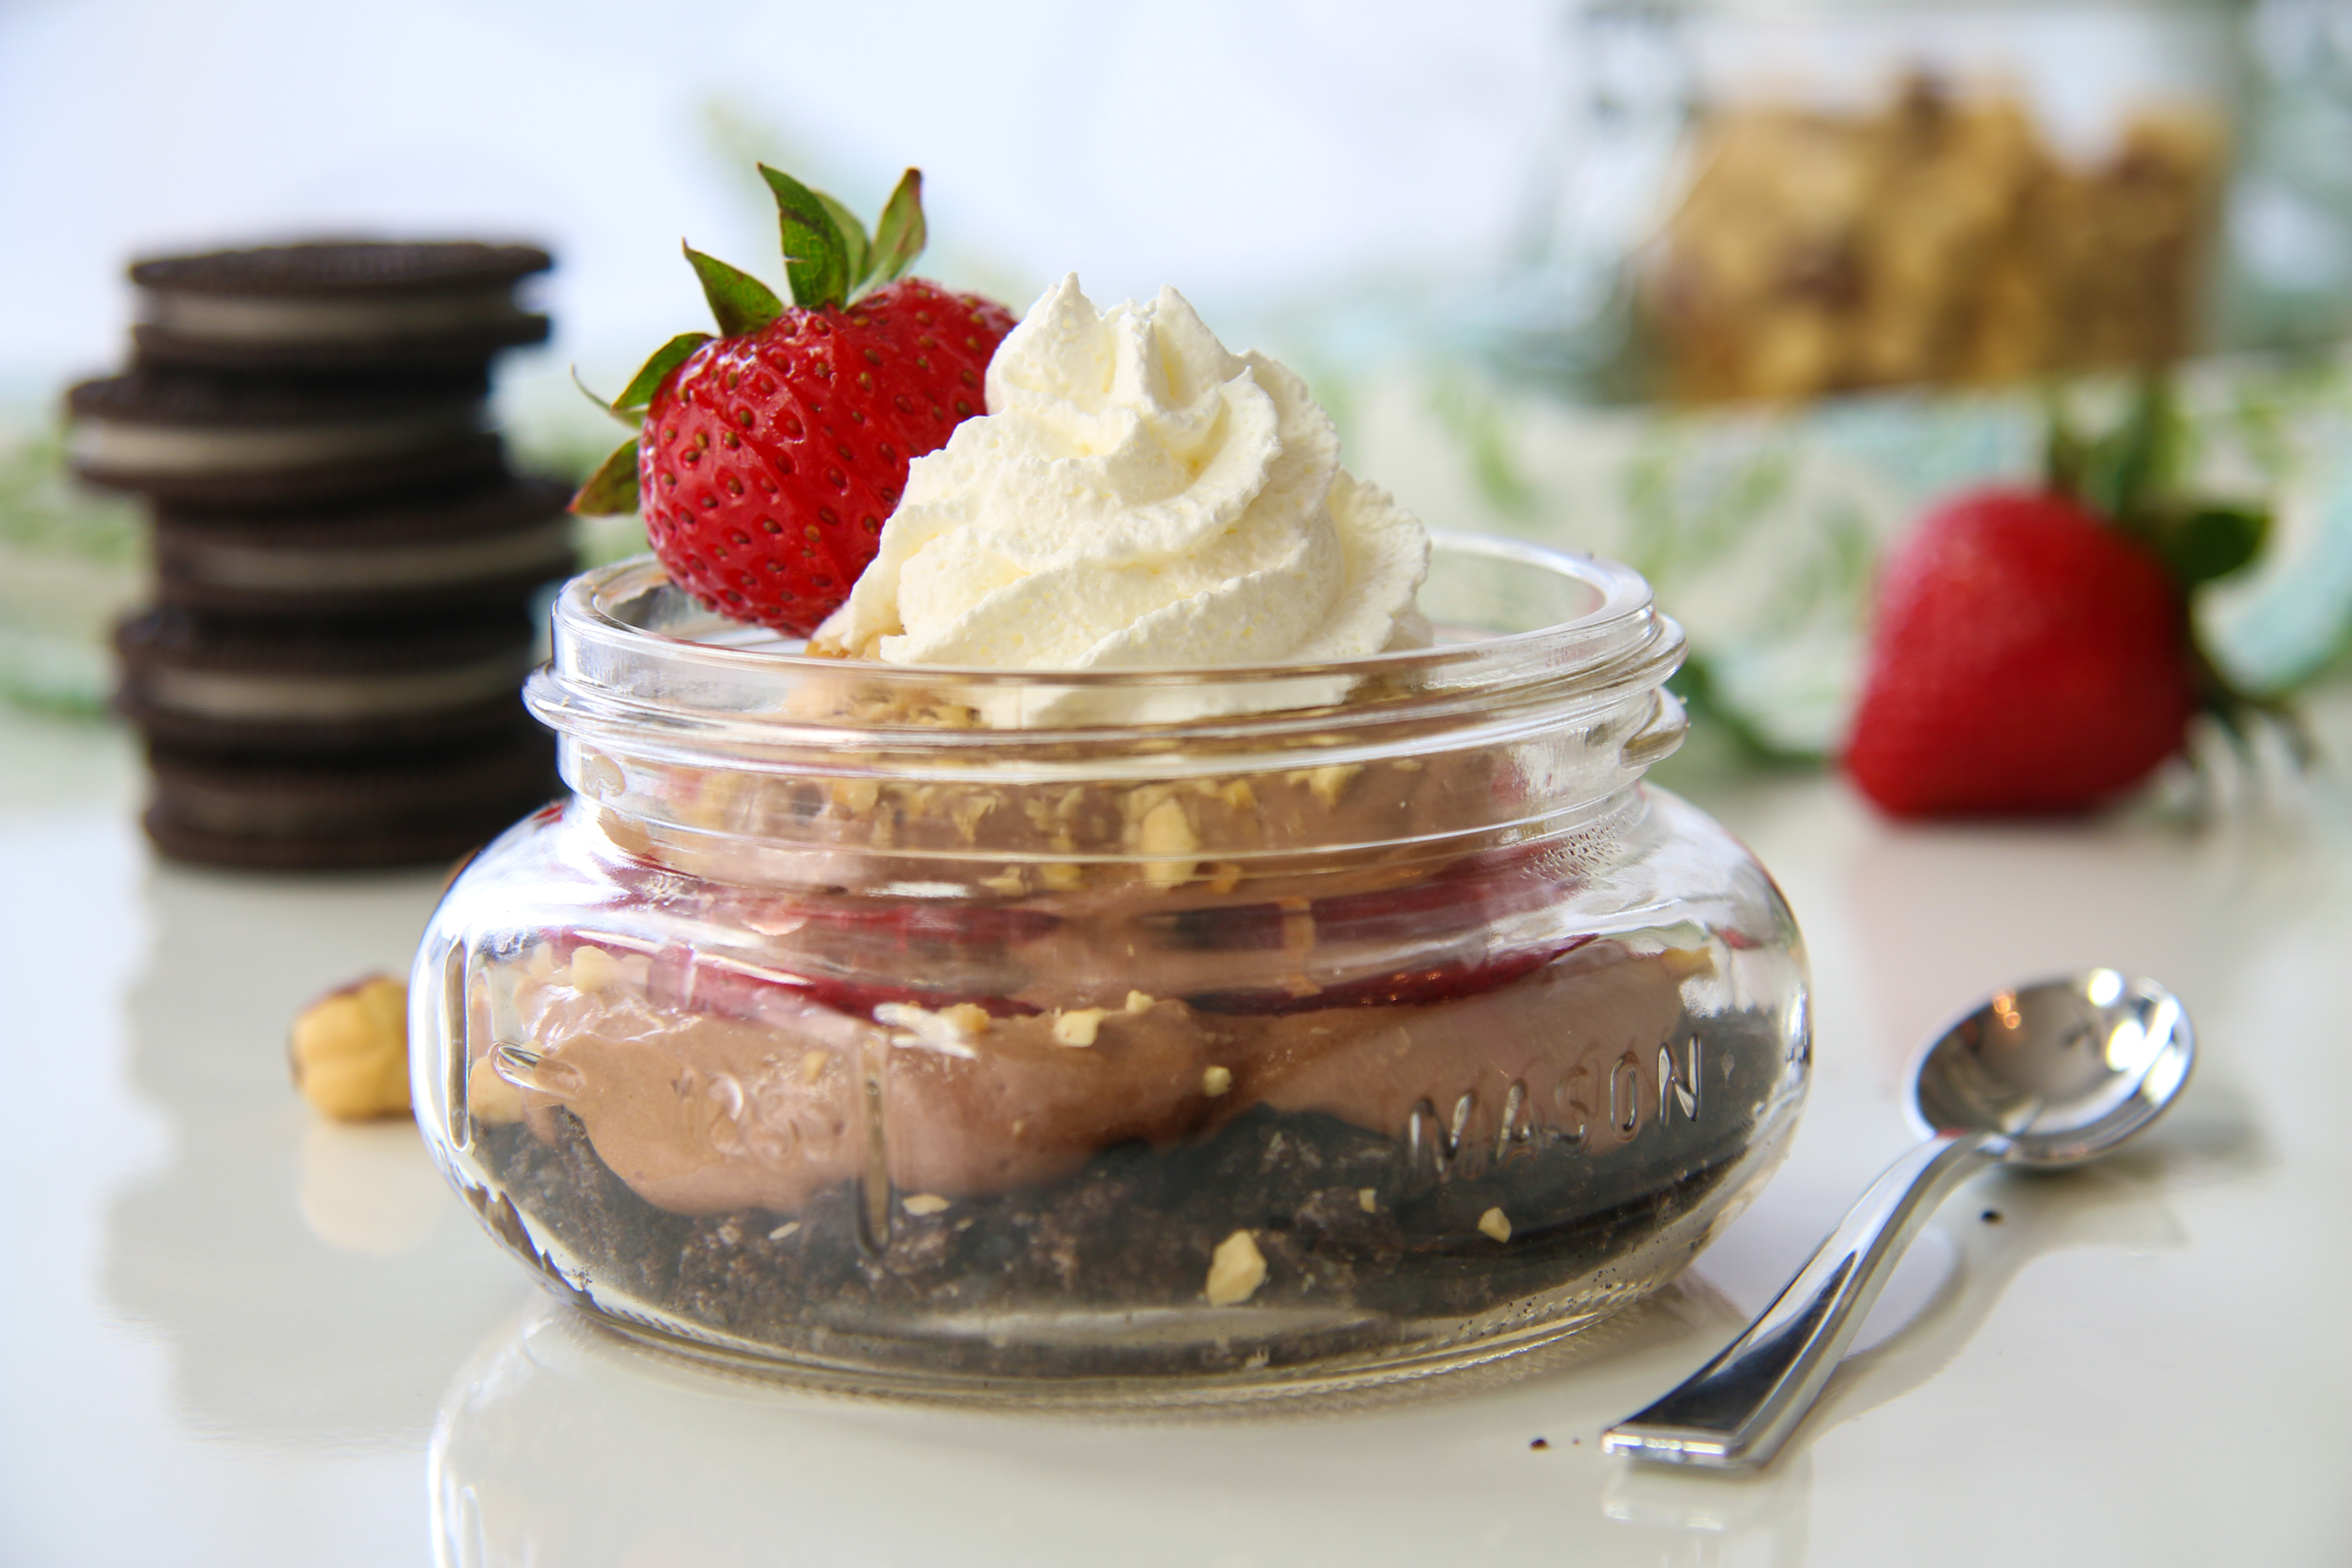 No Bake Nutella Cheesecakes with Strawberries | ChefJulieYoon.com